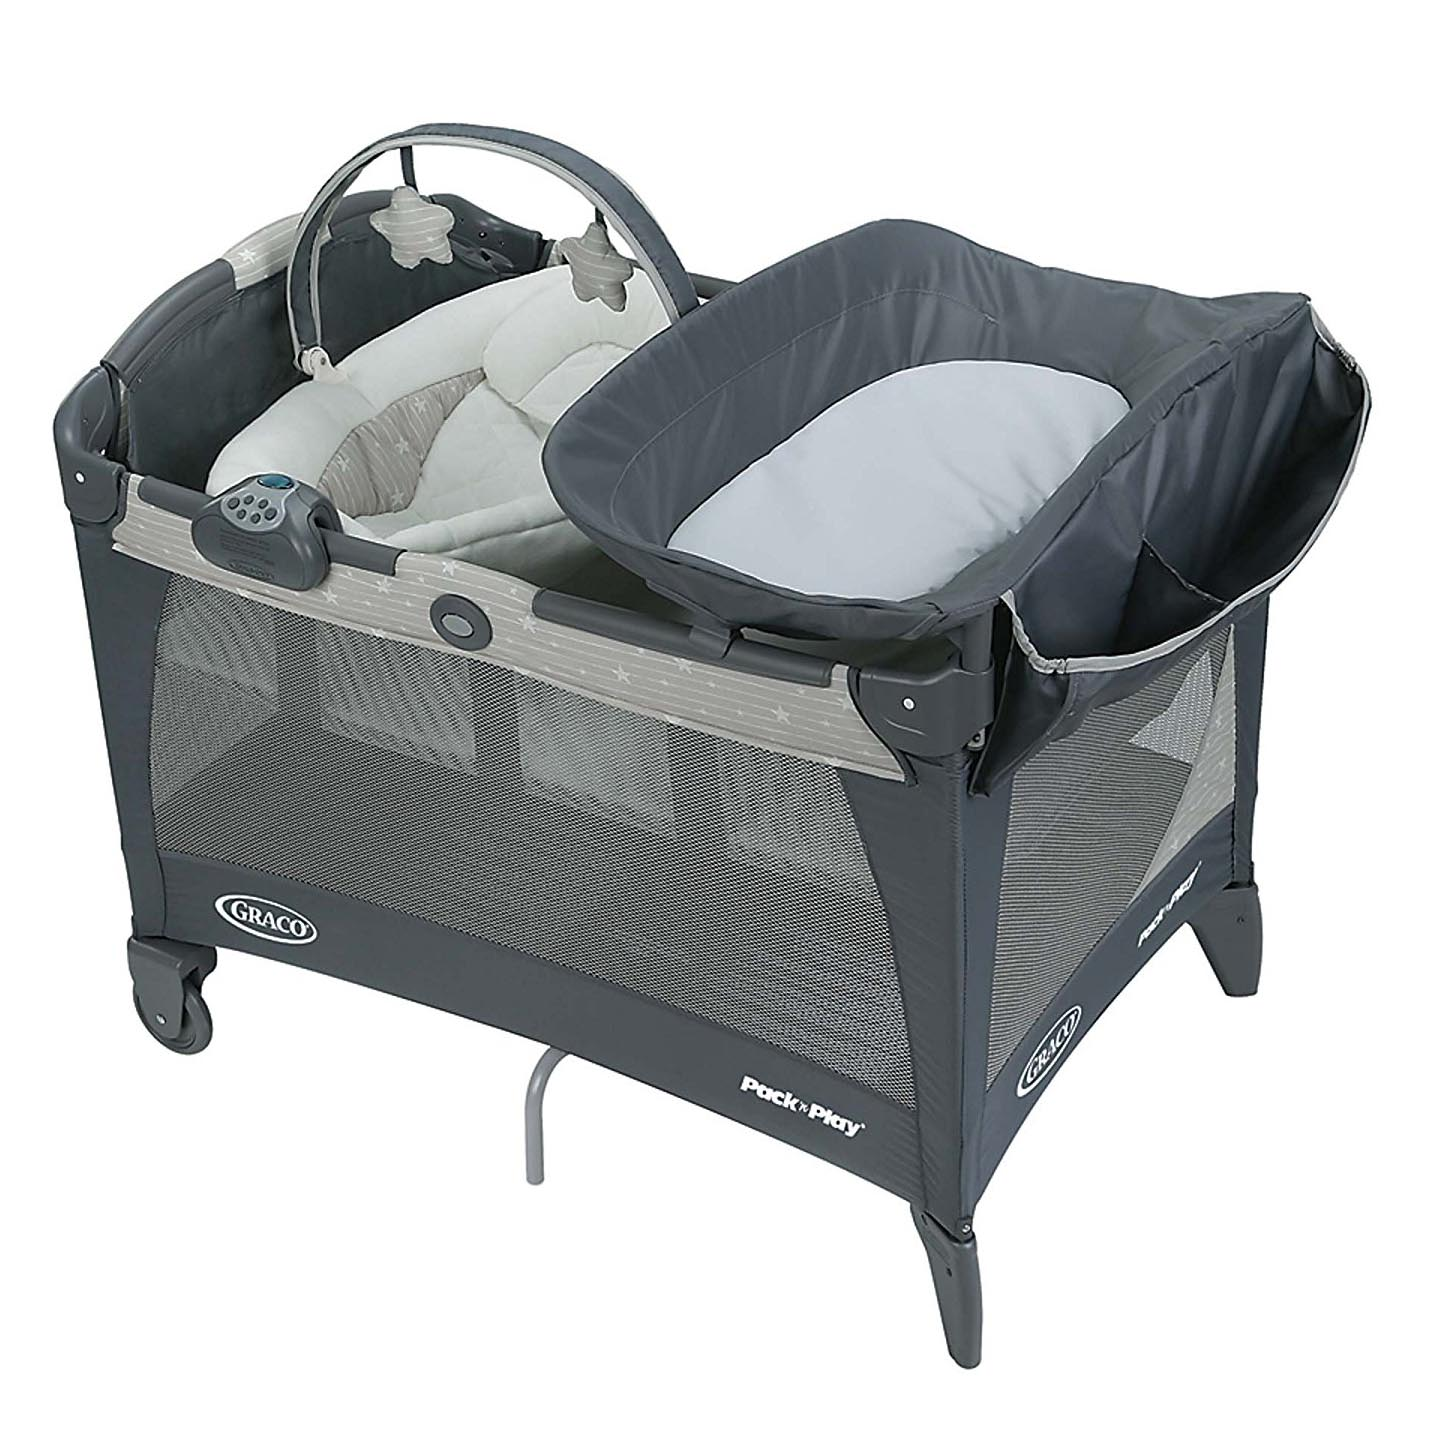 Graco Pack N Play Portable Playard Carnival Portable Charger Cost Portable Radio With Excellent Fm Reception Portable Washer Ratings: Graco Pack €�n Play Playard With Newborn Napper Station LX